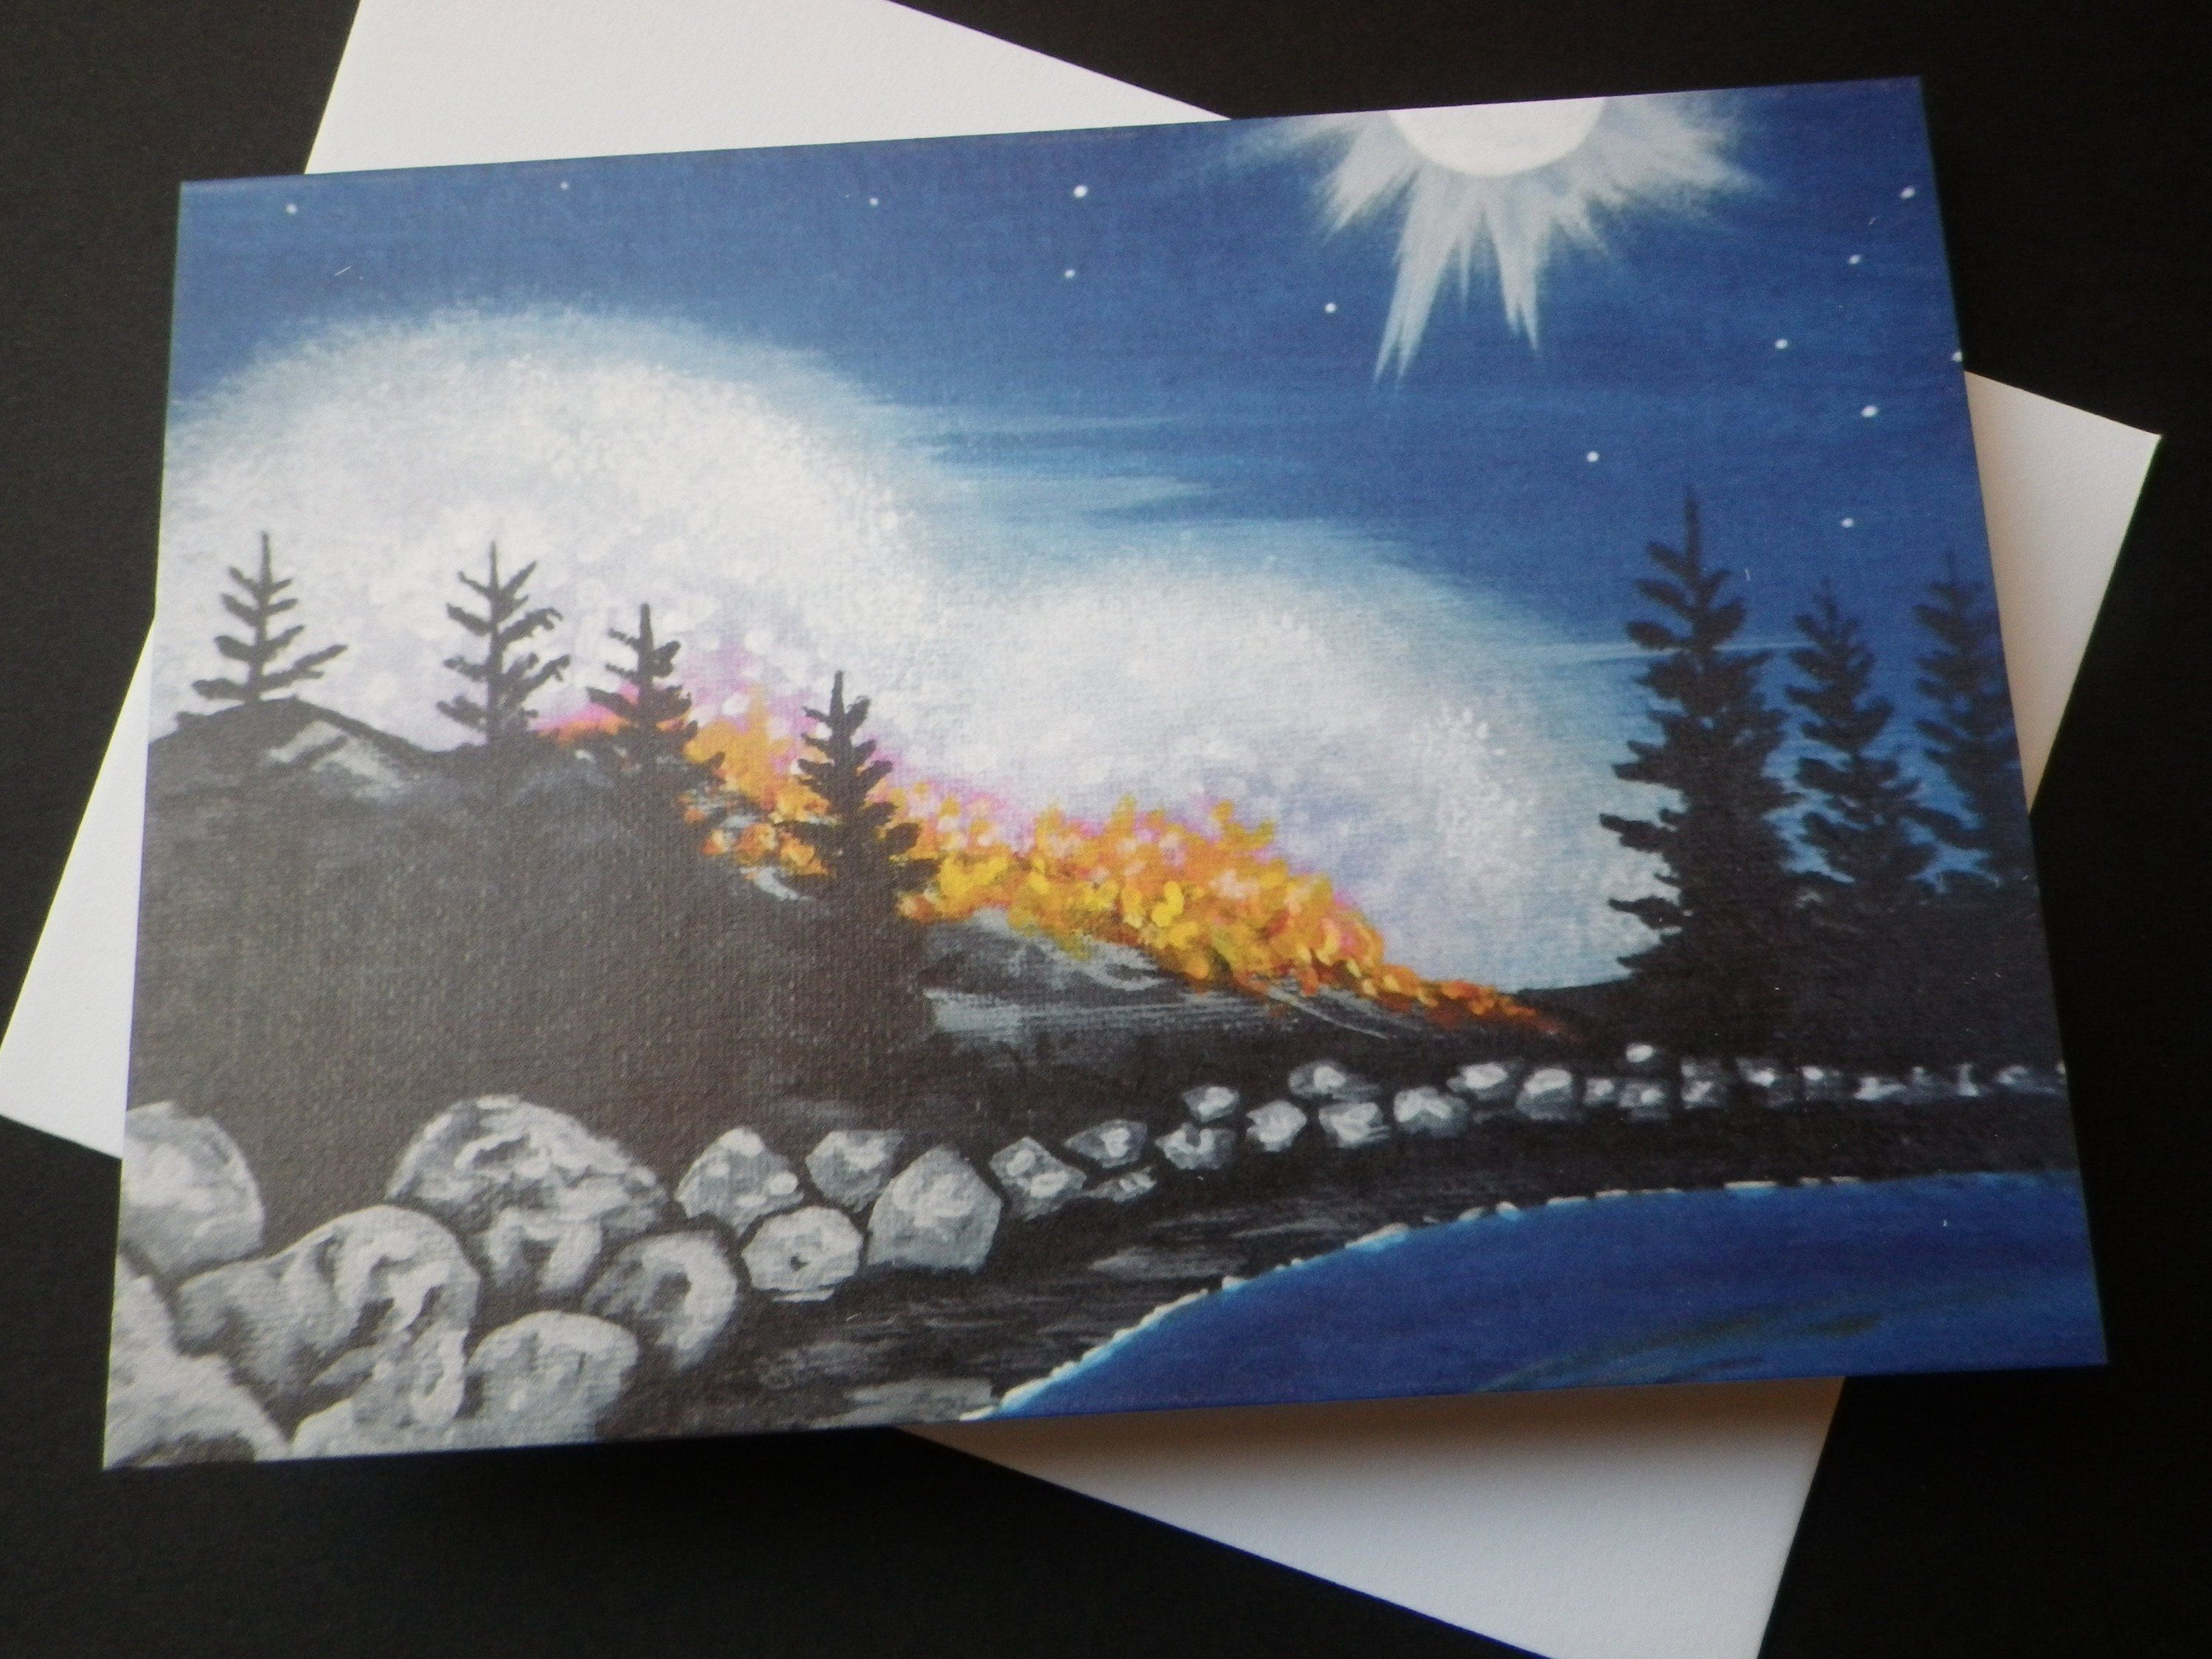 Fire and moonlight forest fire wildland firefighter gift